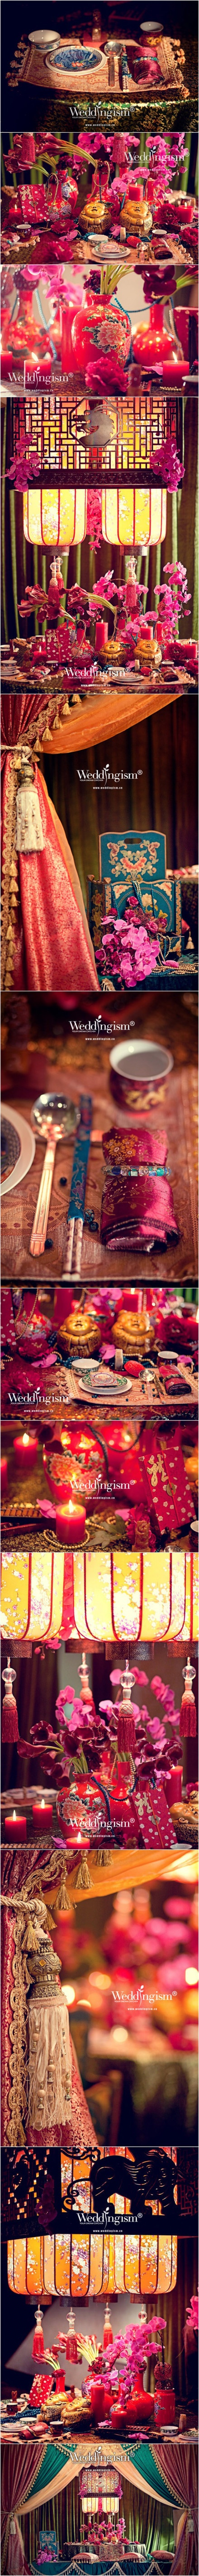 Best 25 chinese wedding decor ideas on pinterest asian for Asian wedding house decoration ideas